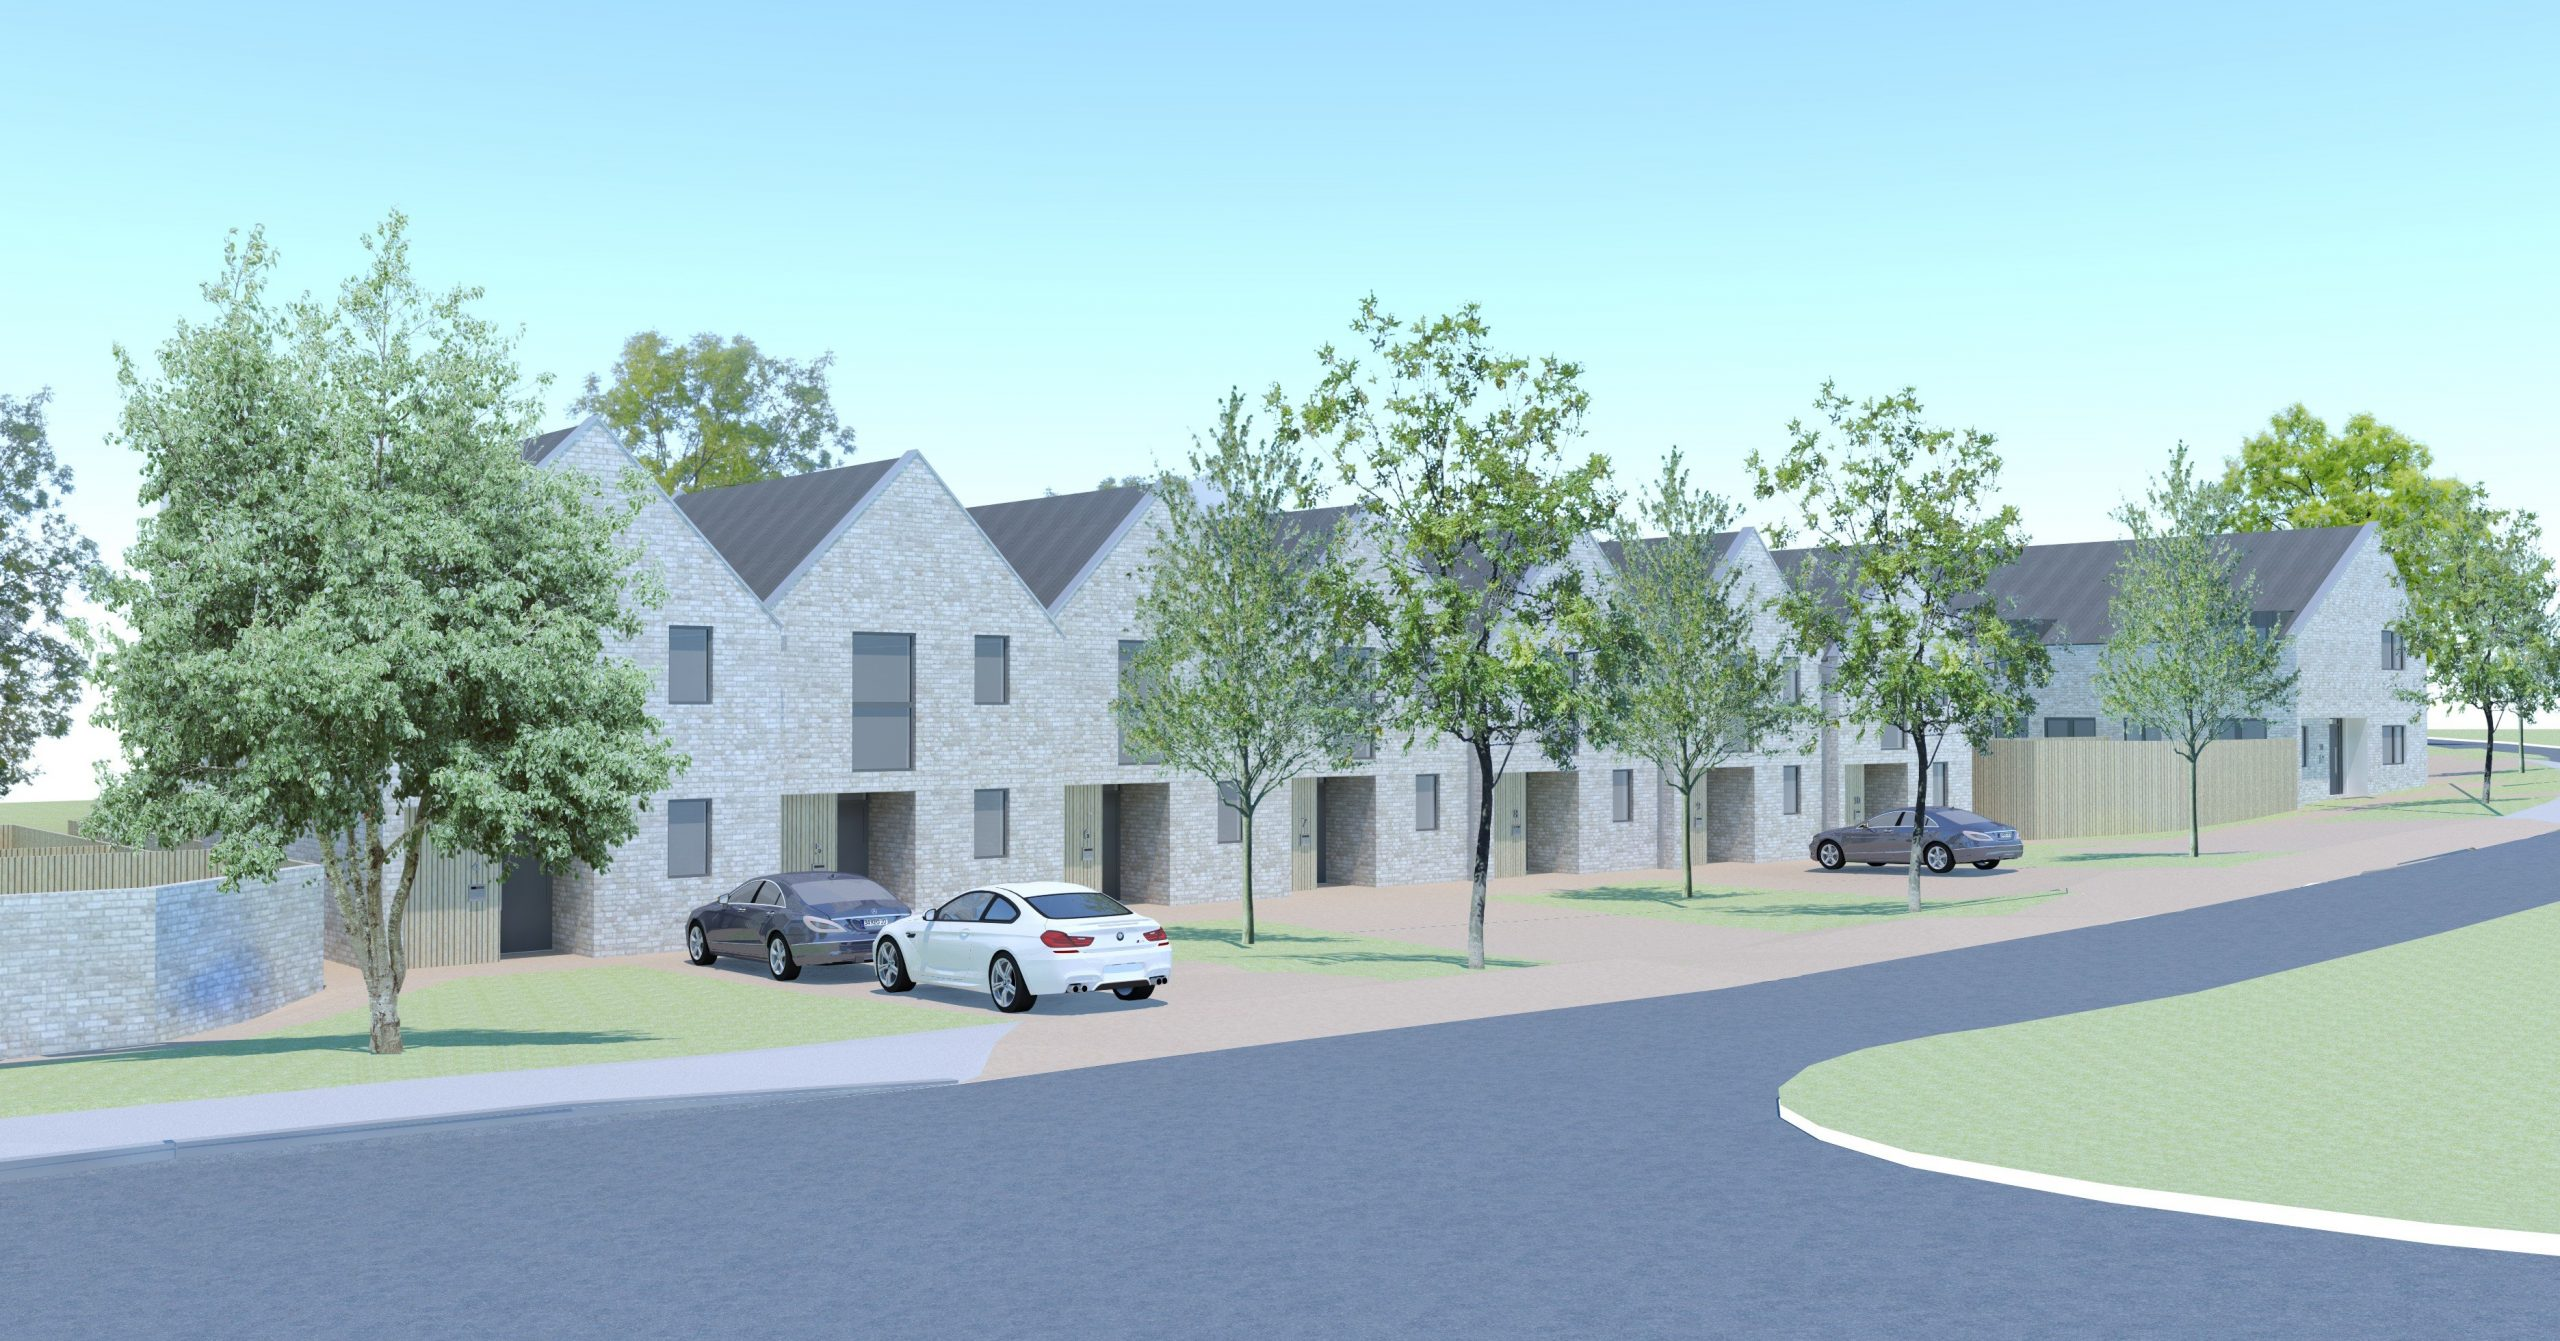 Social Housing, Cambridge House, Dursley, West Waddy, Architects, Town Planners, Urban Designers